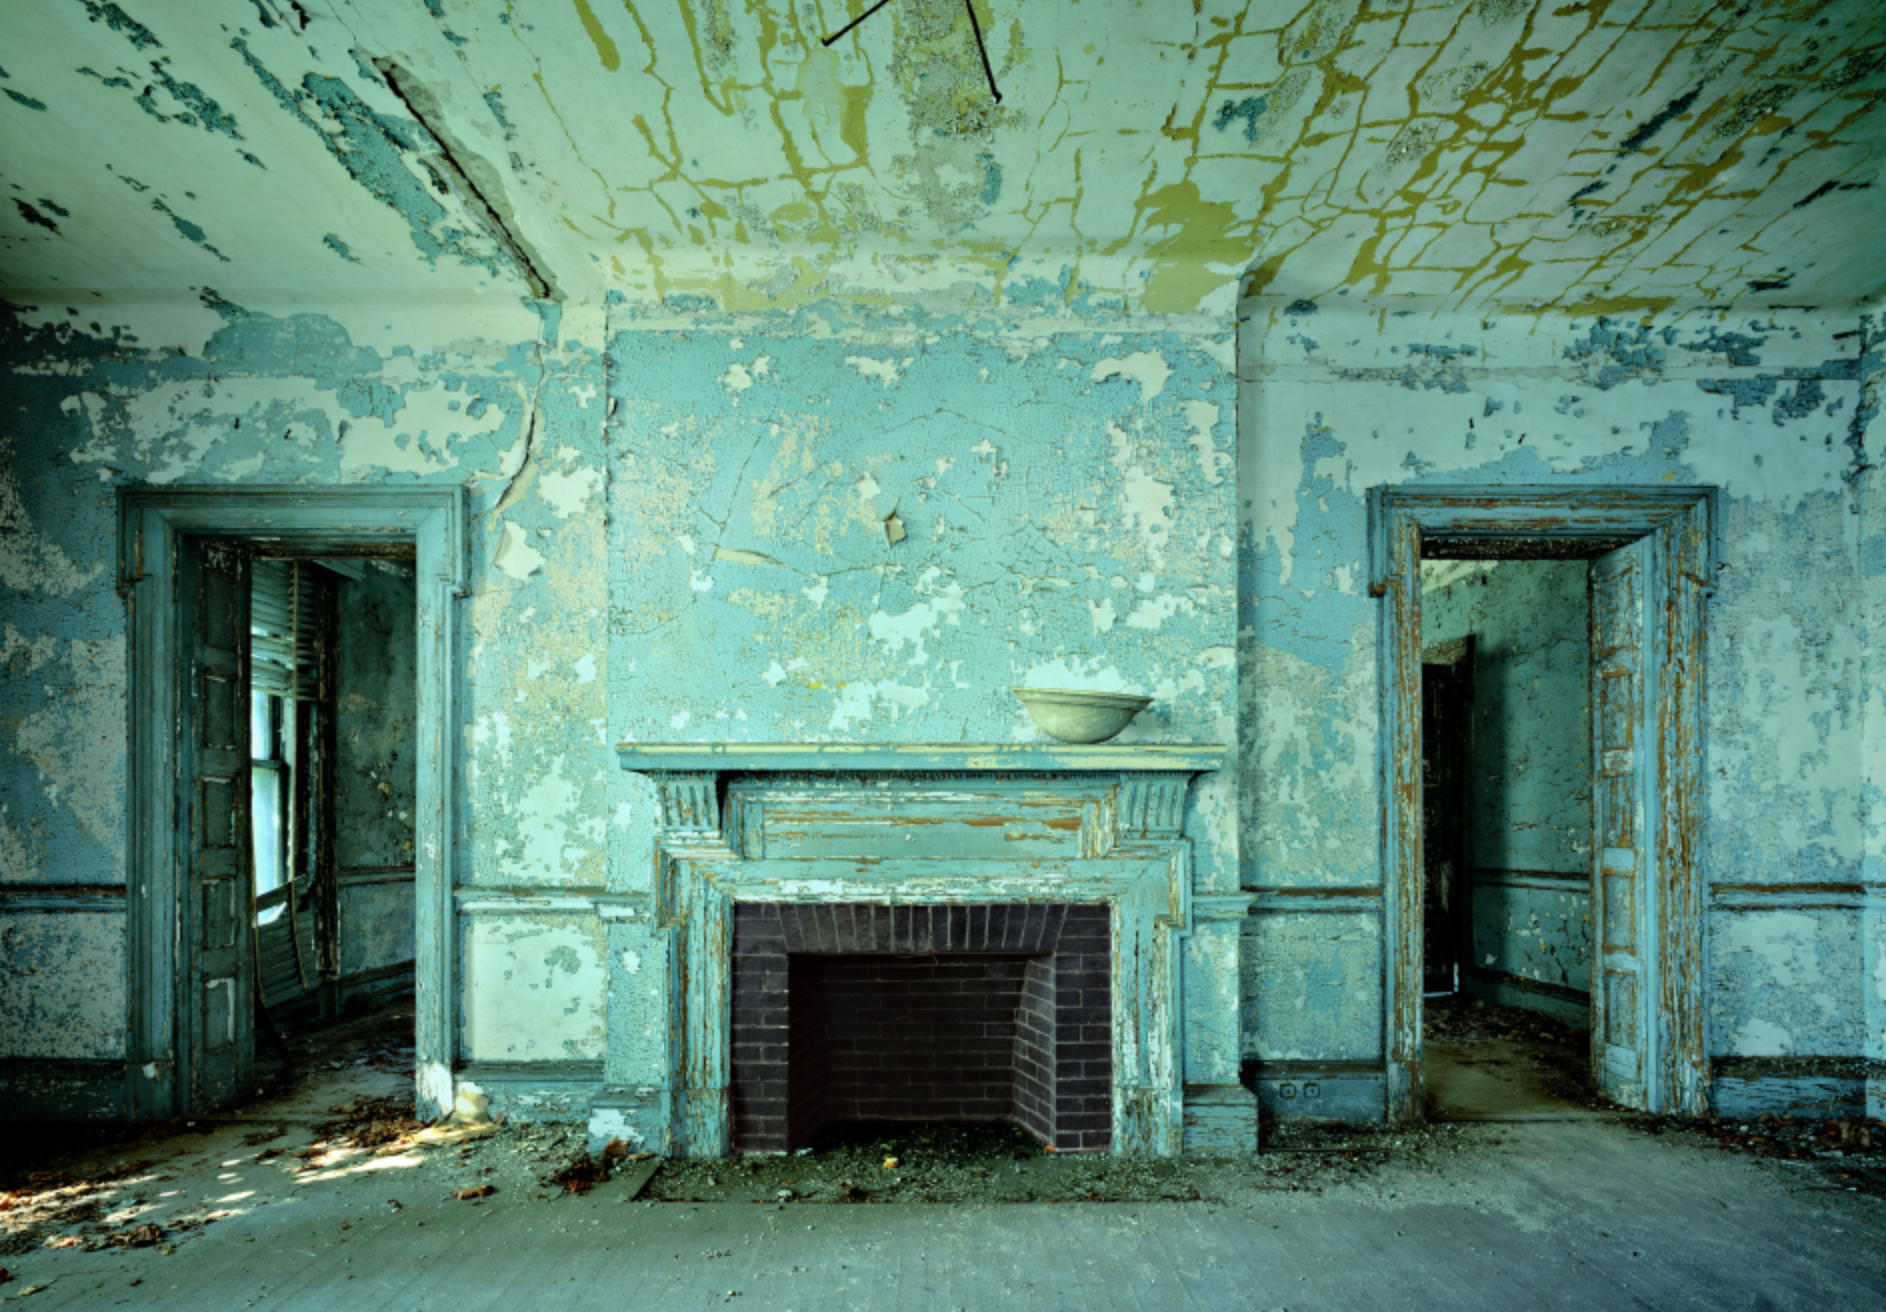 Pin By Steve Oakes On Abandoned Spaces